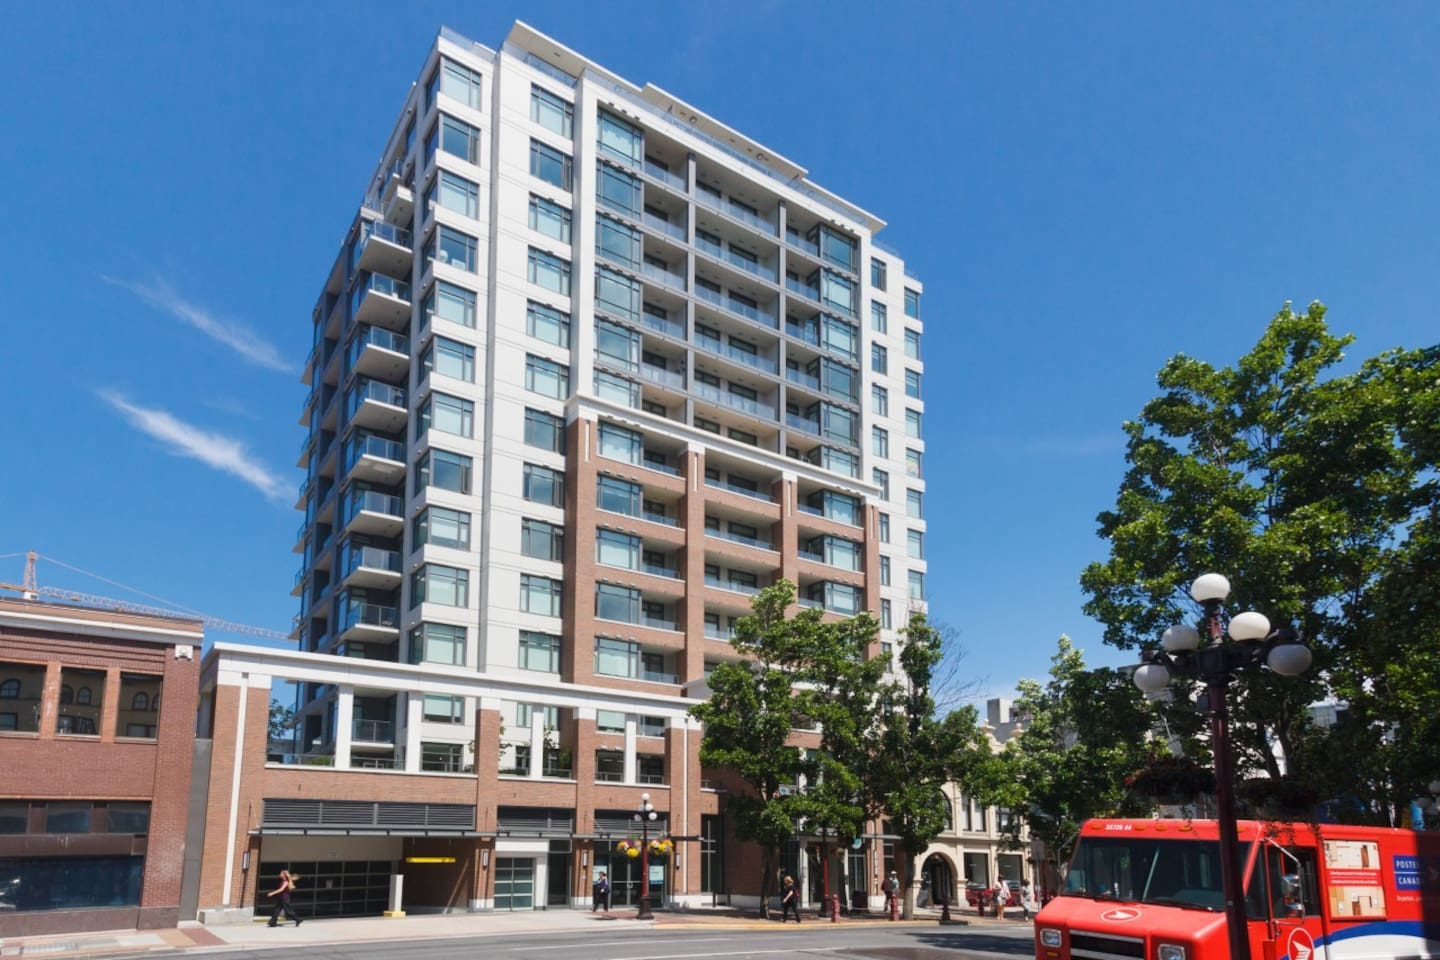 1bdr condo downtown Victoria - The Era - Apartments for Rent in ...